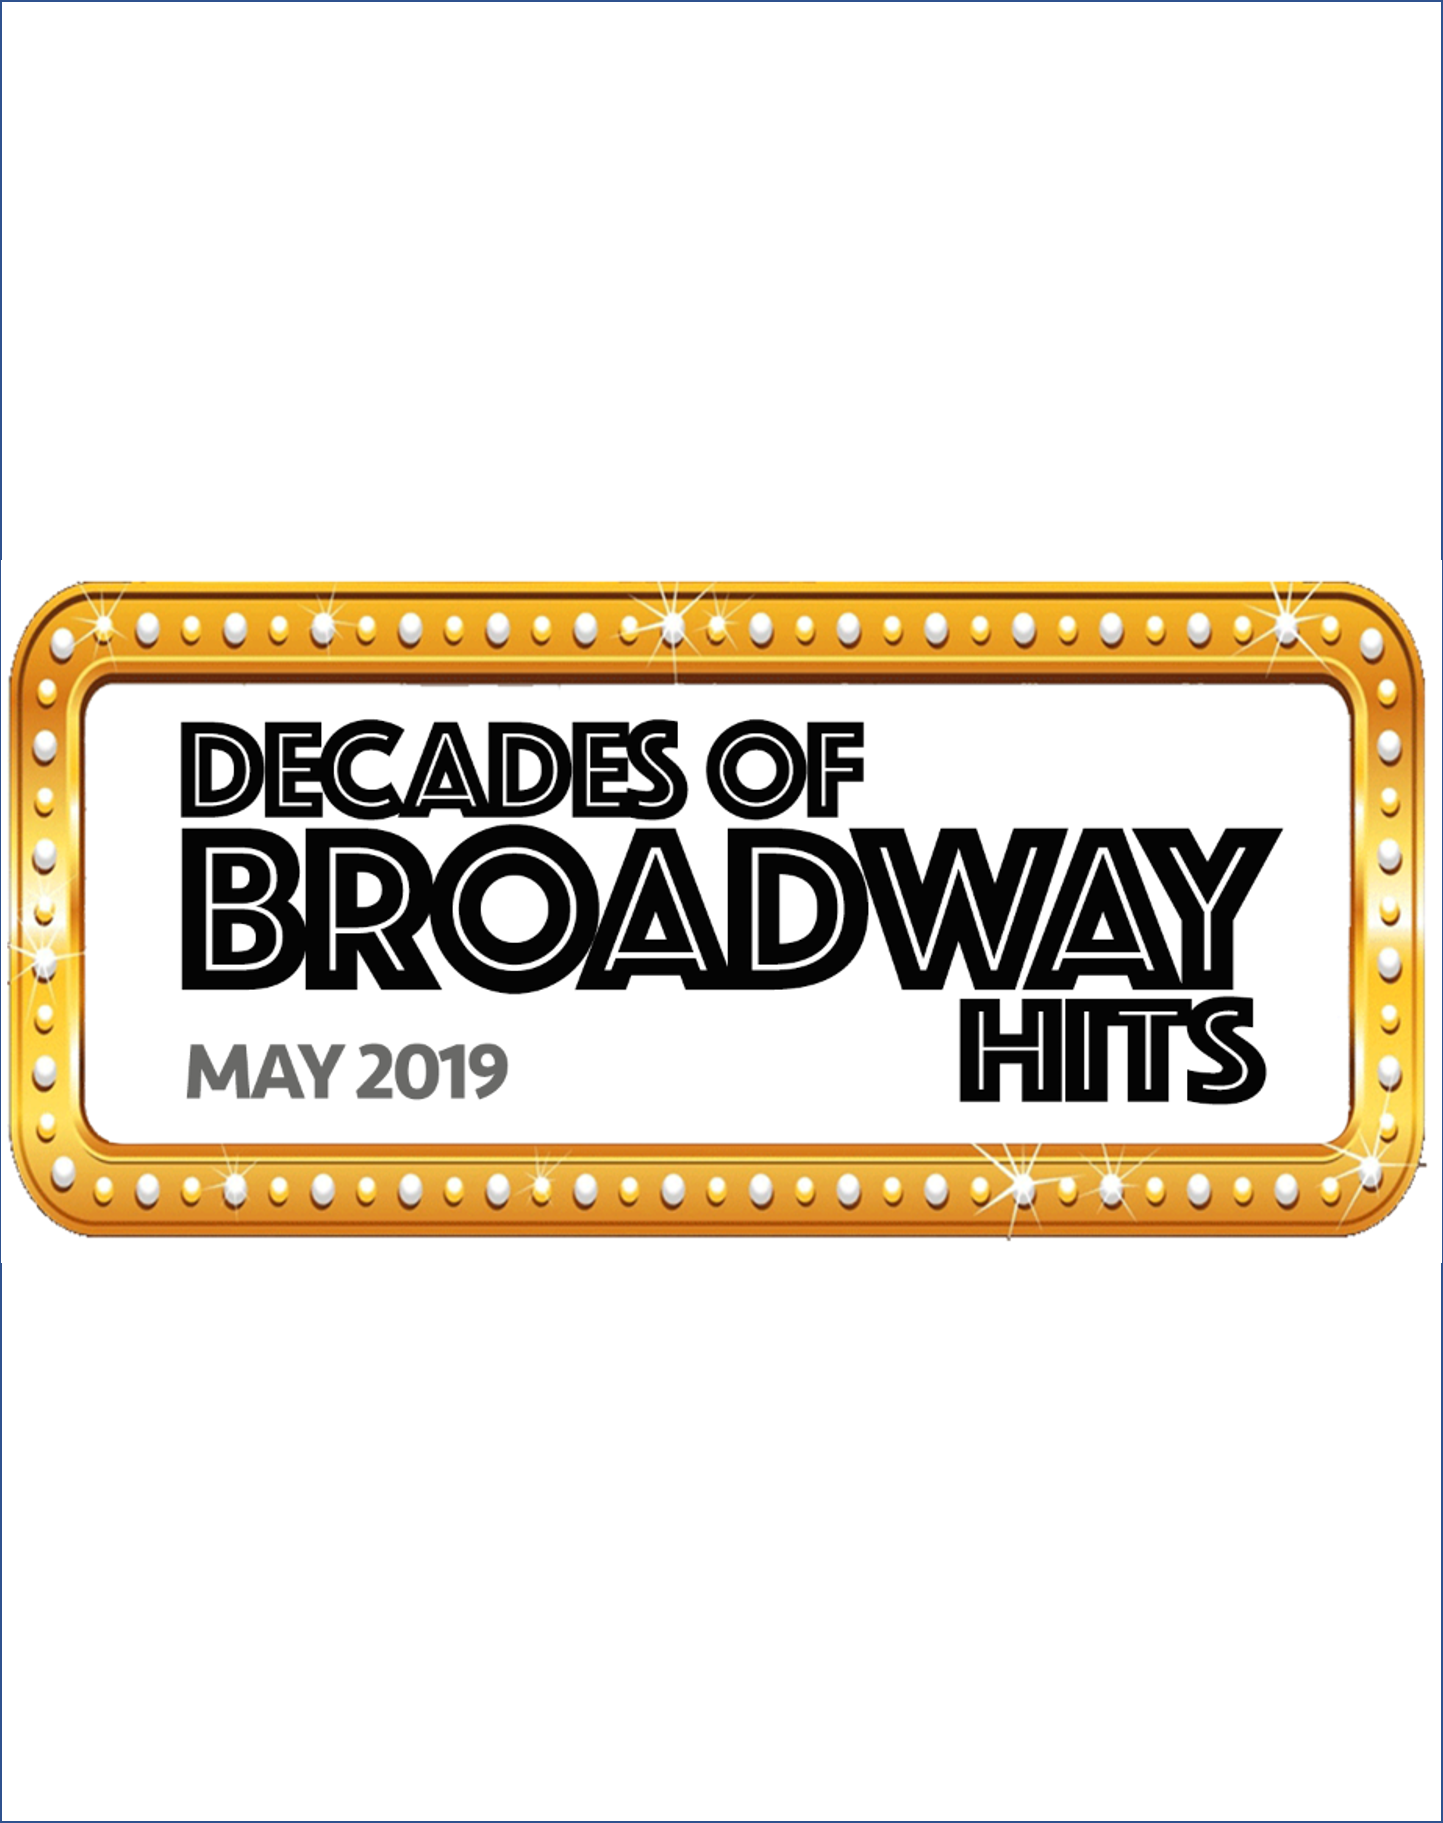 Decades of Broadway Hits 2019 - Copy